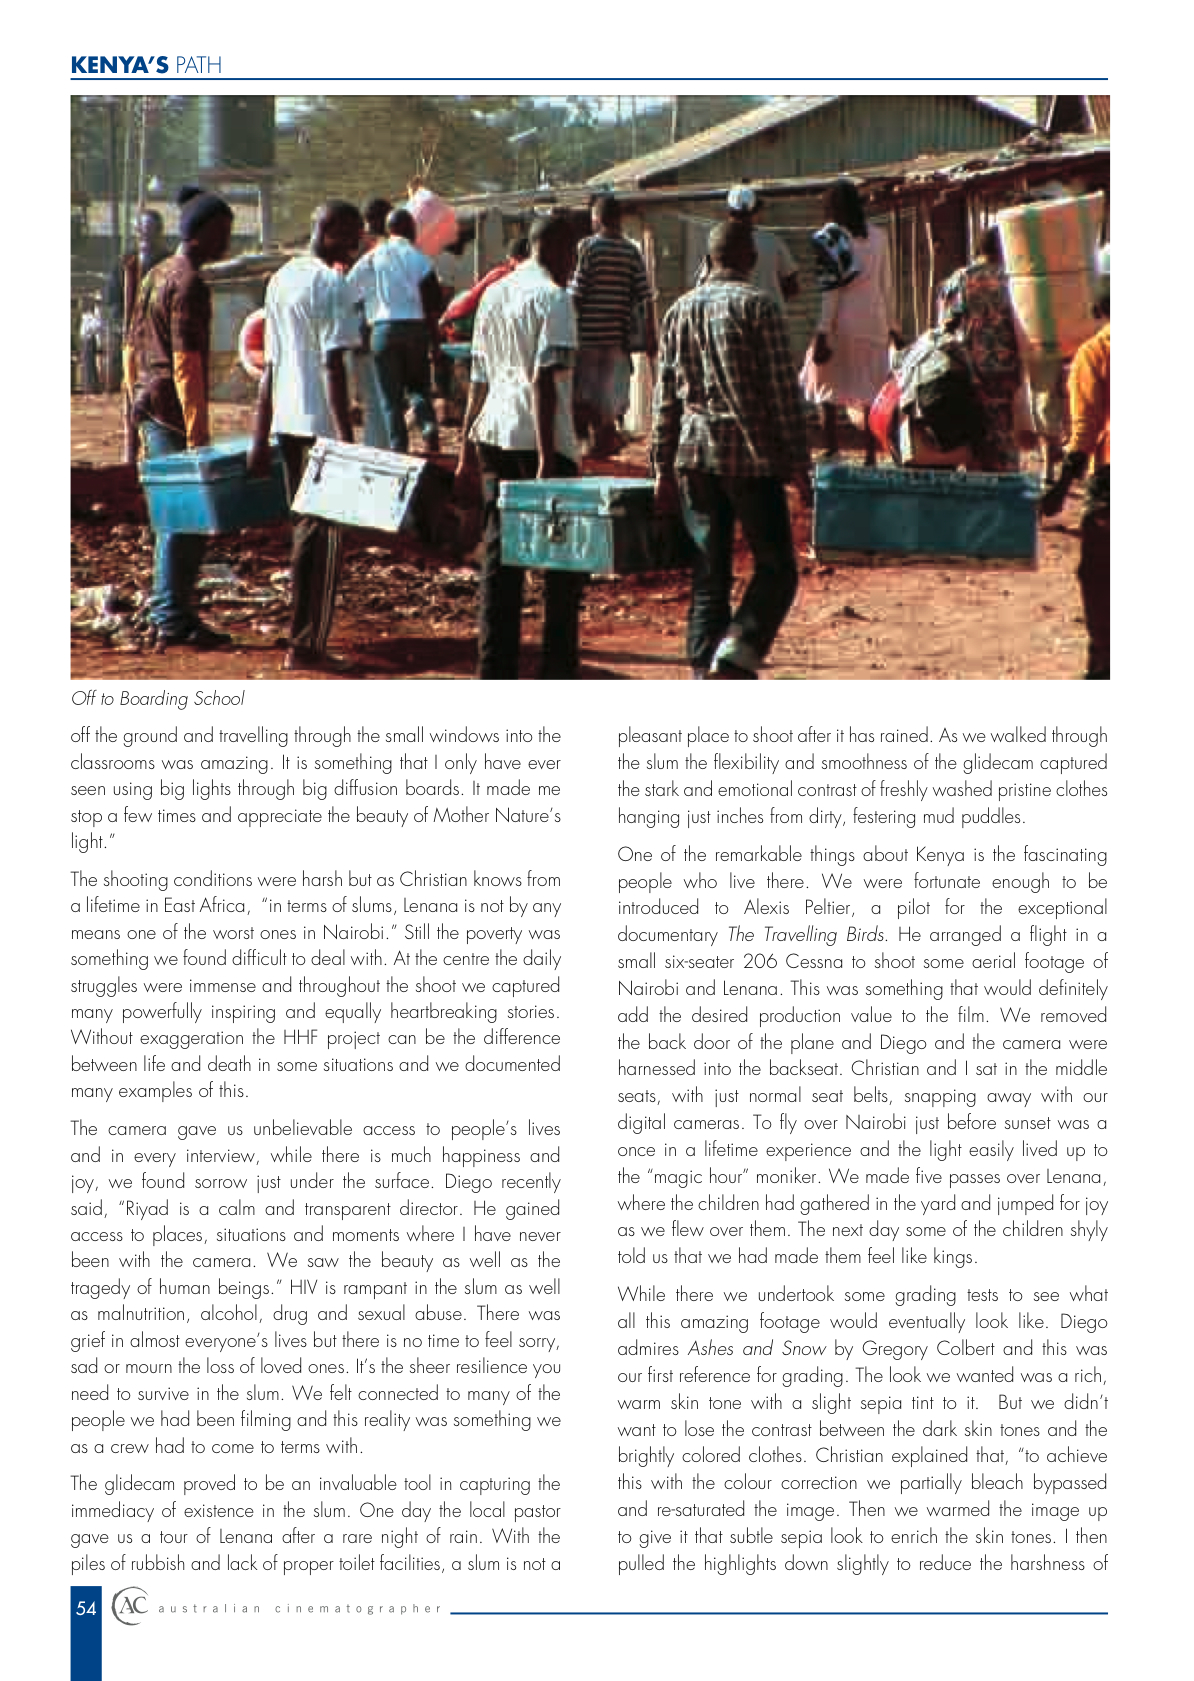 AC 42 Kenyas Path Article Pg 4